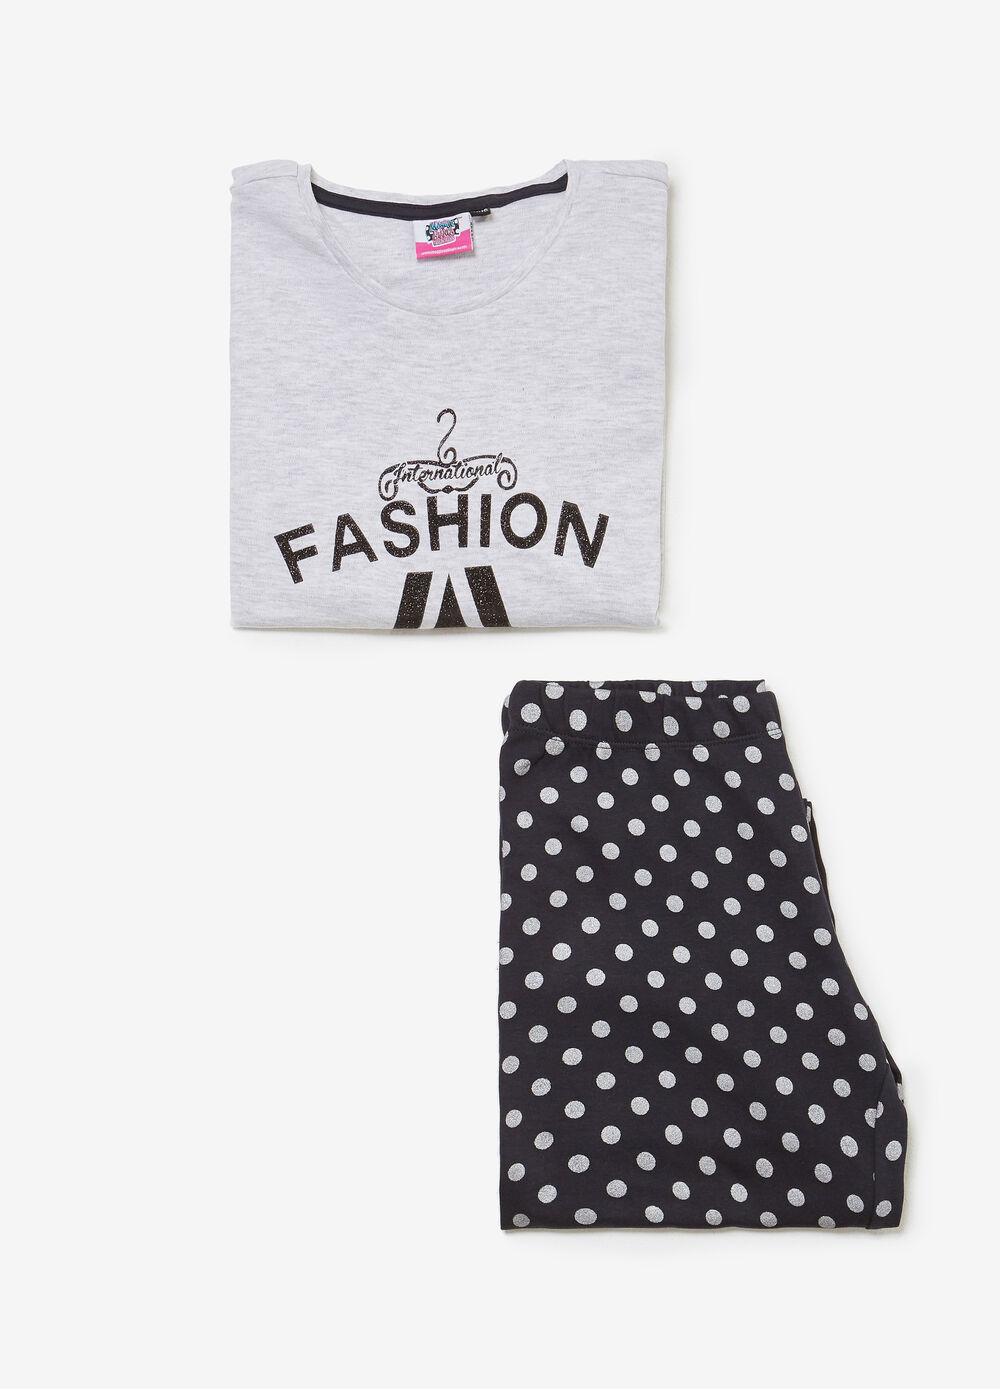 100% cotton pyjamas with lettering and polka dots